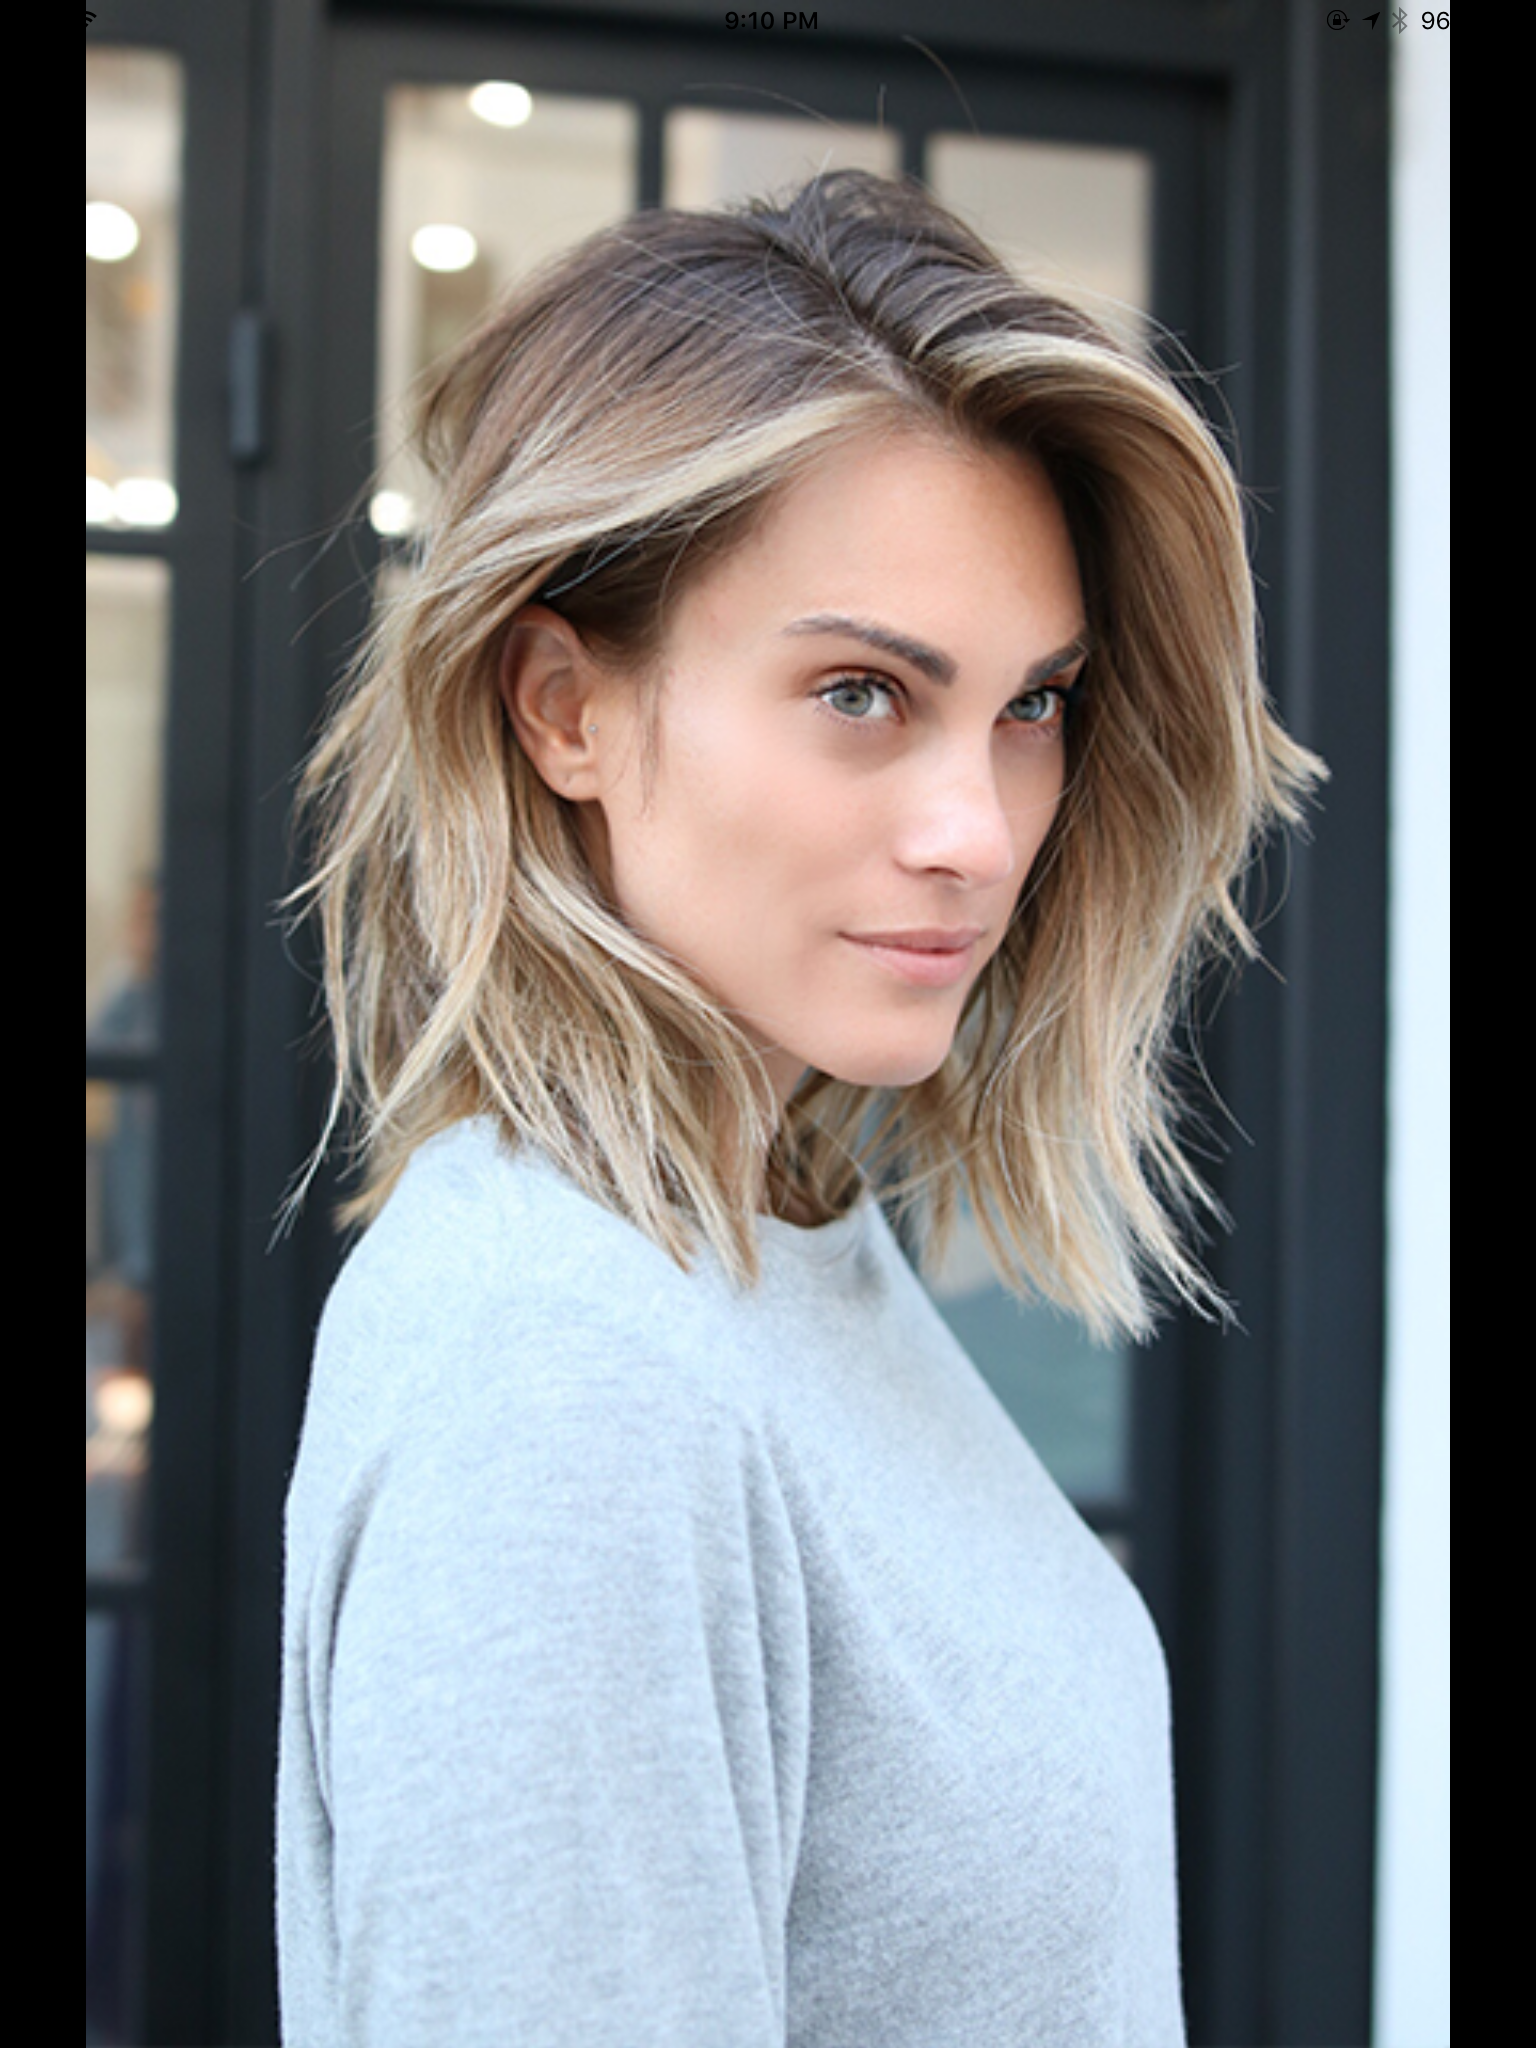 Trending Hairstyles Pinmandy Gailey On Hair And Makeup  Pinterest  Hair Style